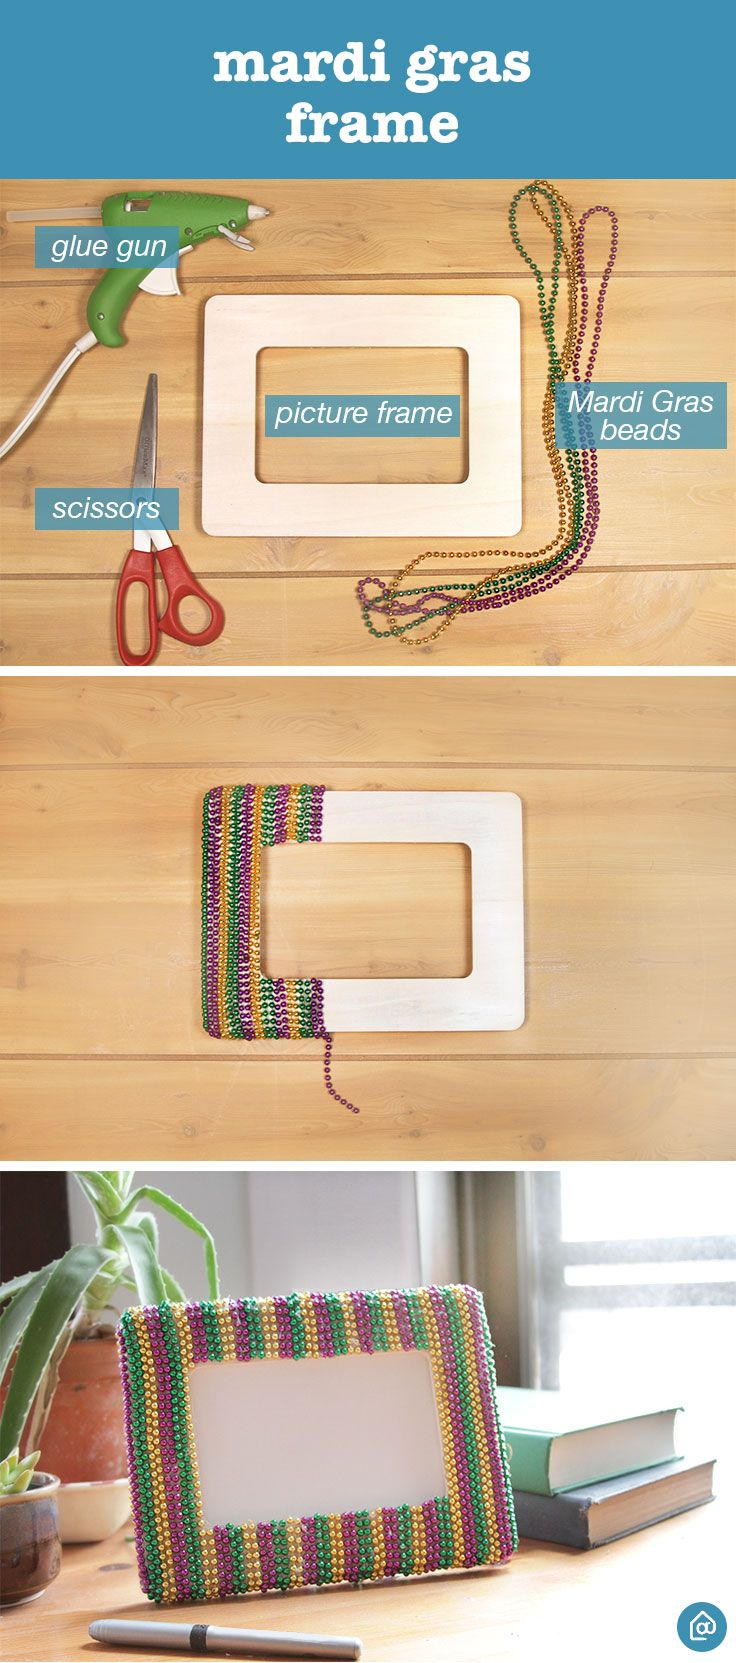 Celebrate Mardi Gras in style with this easy DIY frame. Use leftover Mardi Gras beads to wrap around a plain, flat picture frame. Cut the beads a little longer than the width of the frame and use a hot glue gun to hold the beads in place. Let it cool overnight.